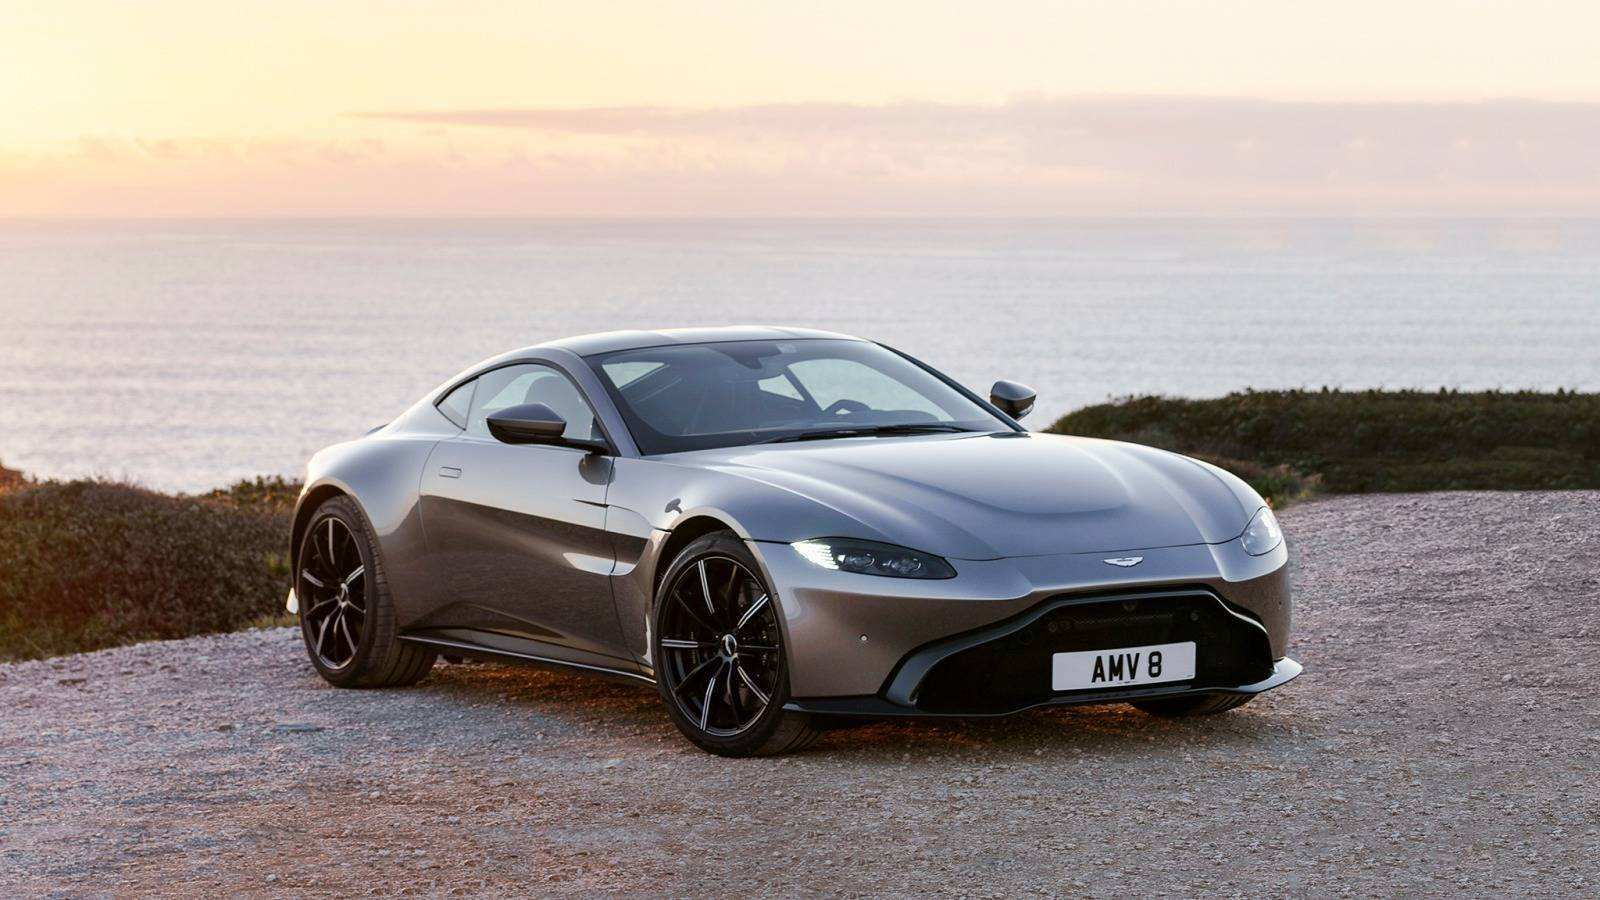 81 All New 2019 Aston Martin Vantage Pricing with 2019 Aston Martin Vantage